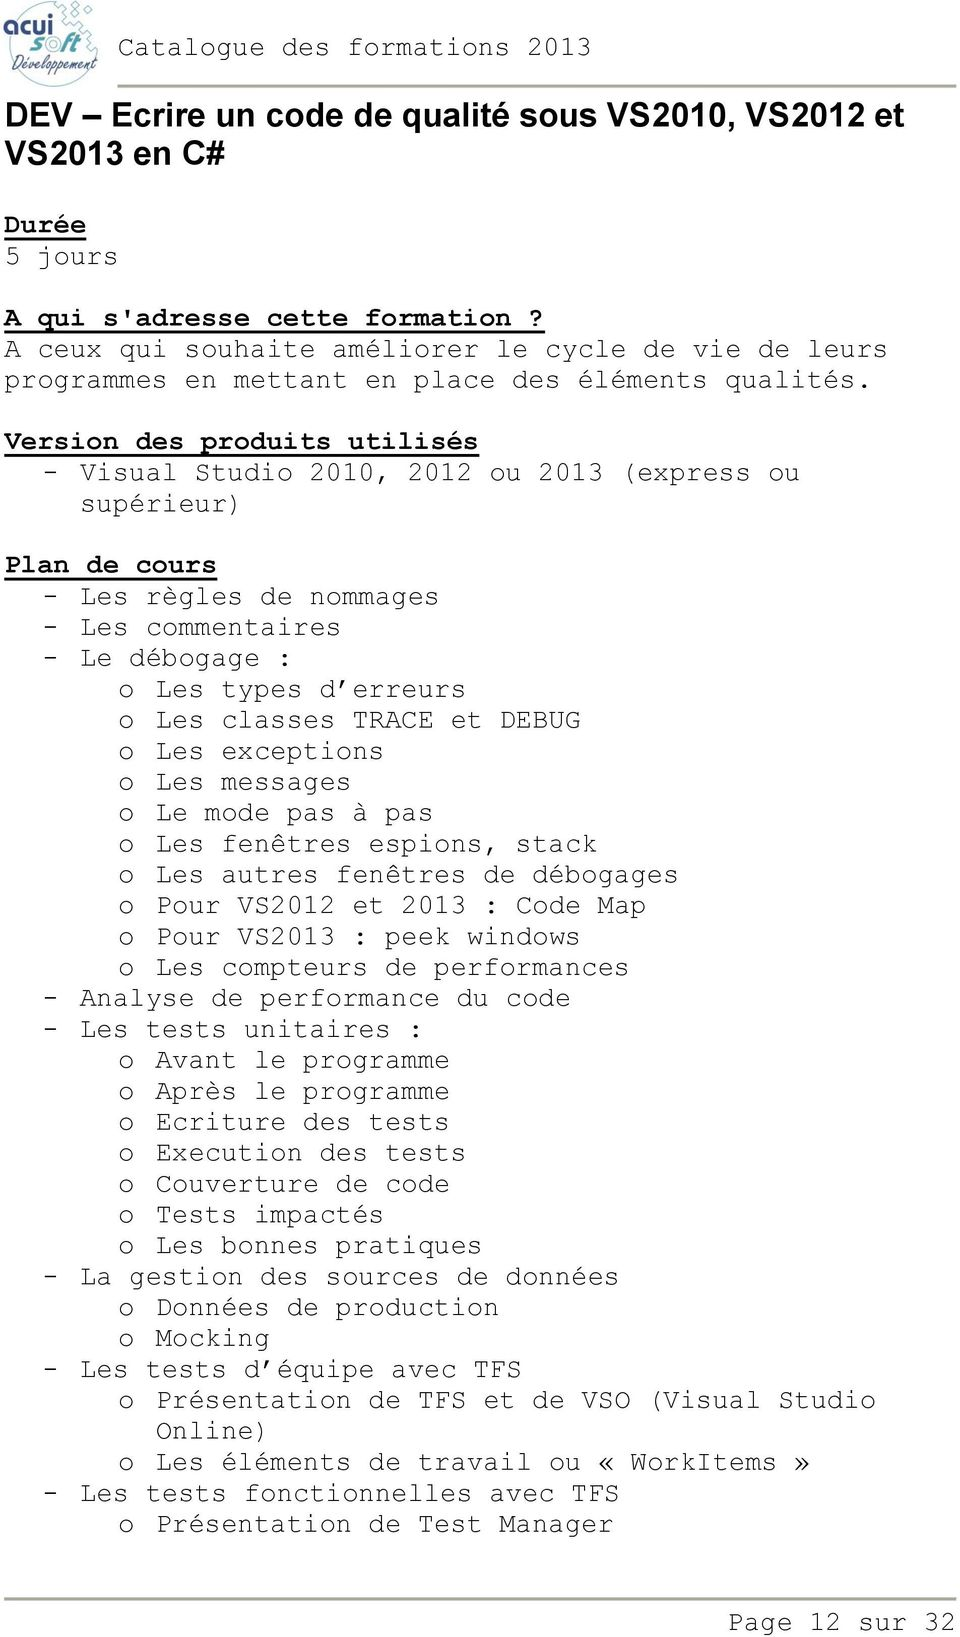 messages o Le mode pas à pas o Les fenêtres espions, stack o Les autres fenêtres de débogages o Pour VS2012 et 2013 : Code Map o Pour VS2013 : peek windows o Les compteurs de performances - Analyse